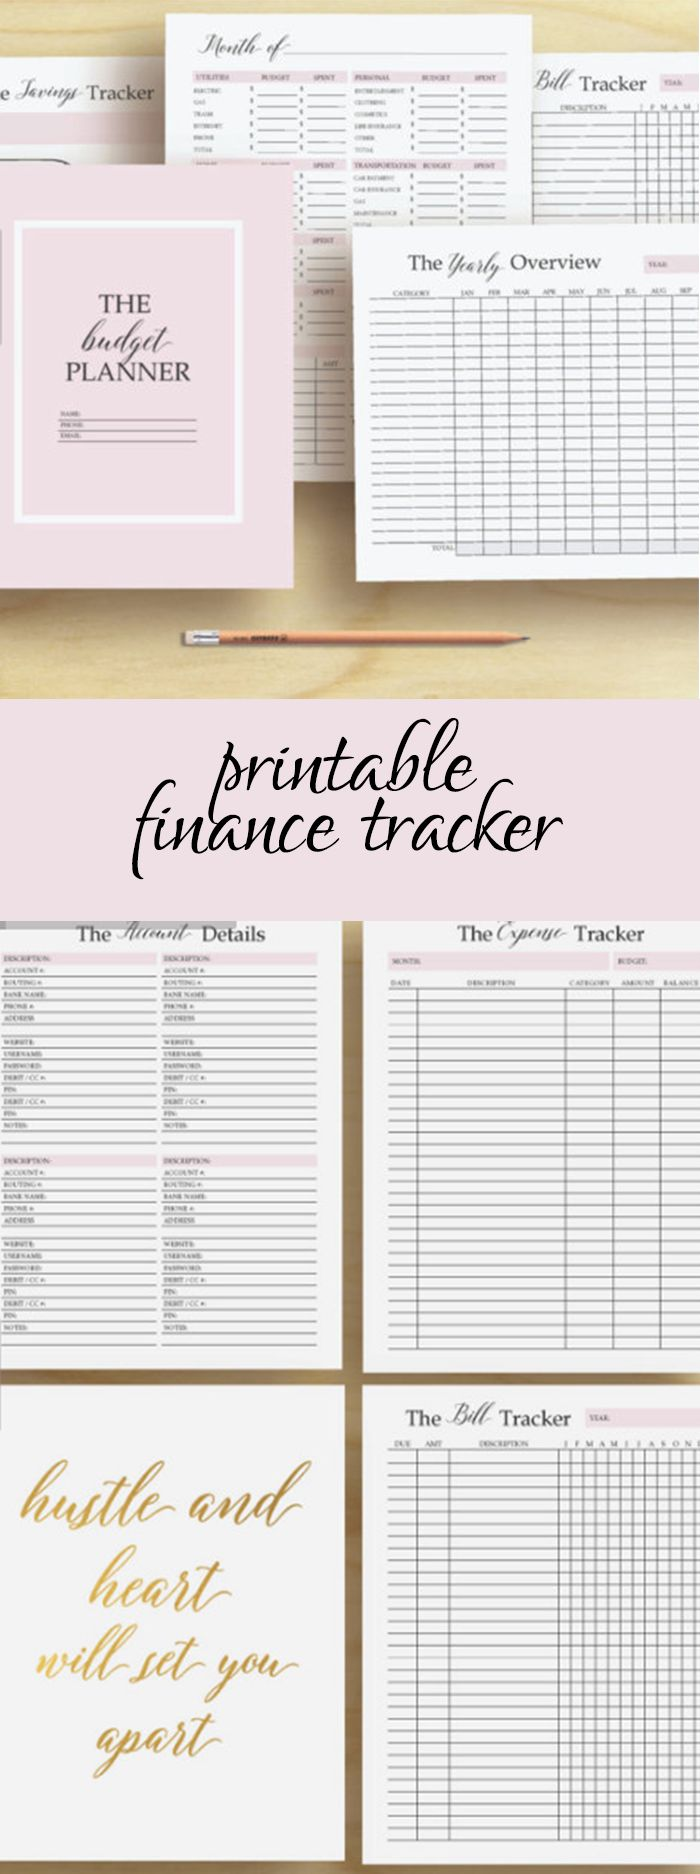 Bill tracker, financial planner and it's pink and gold. I. Love. It.